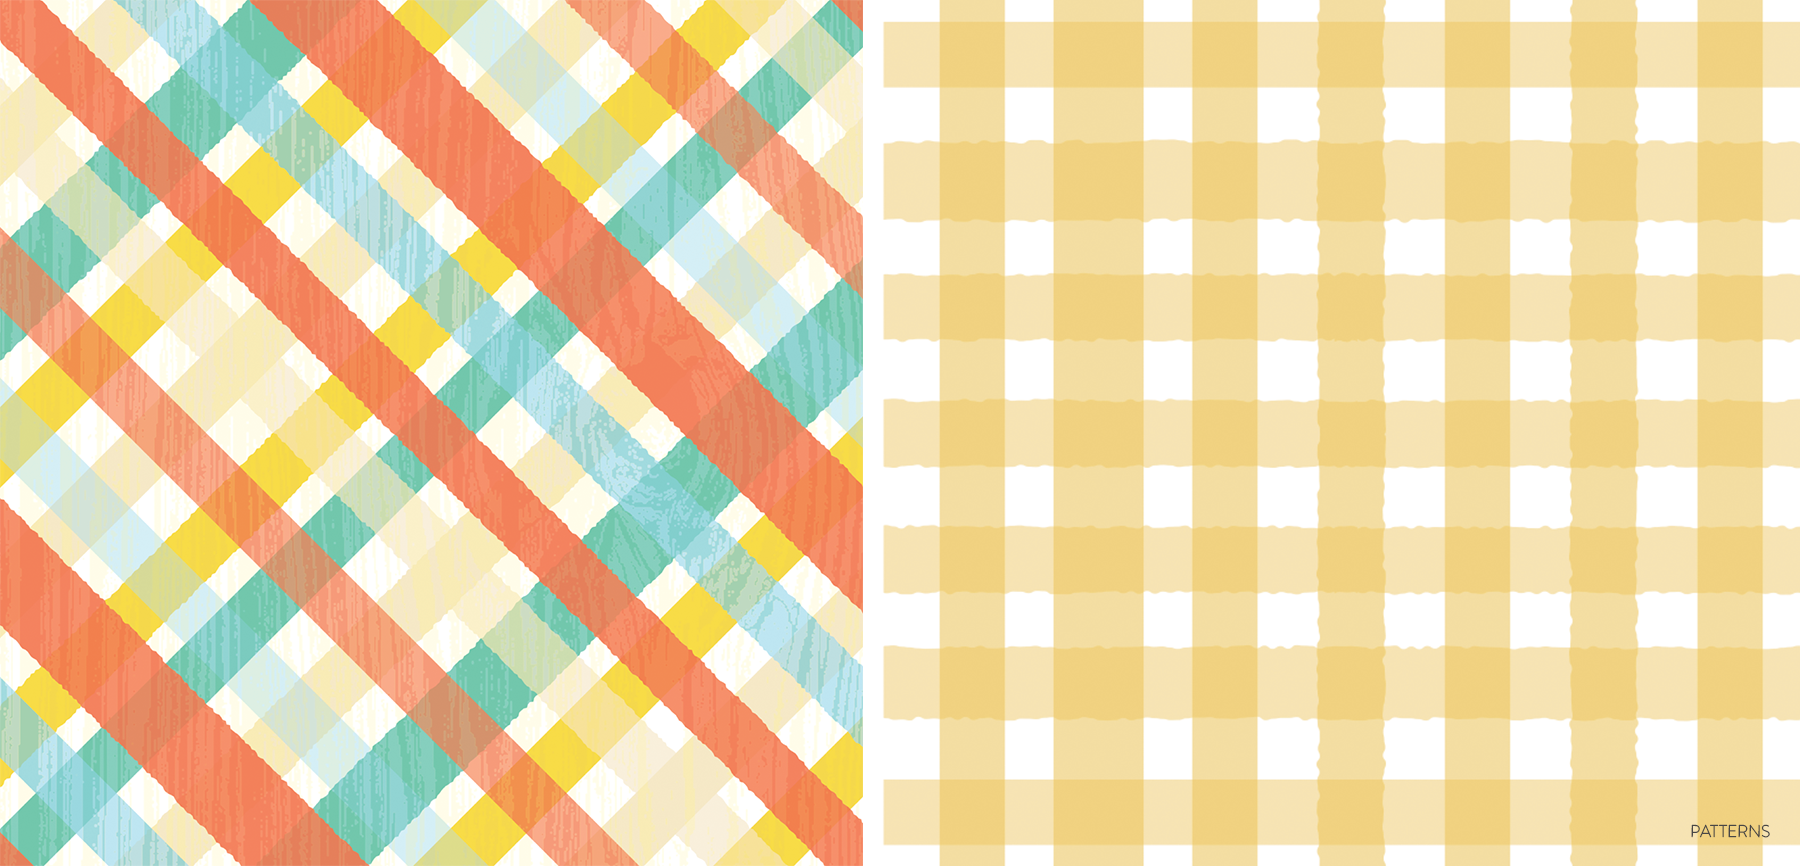 patterns03.png